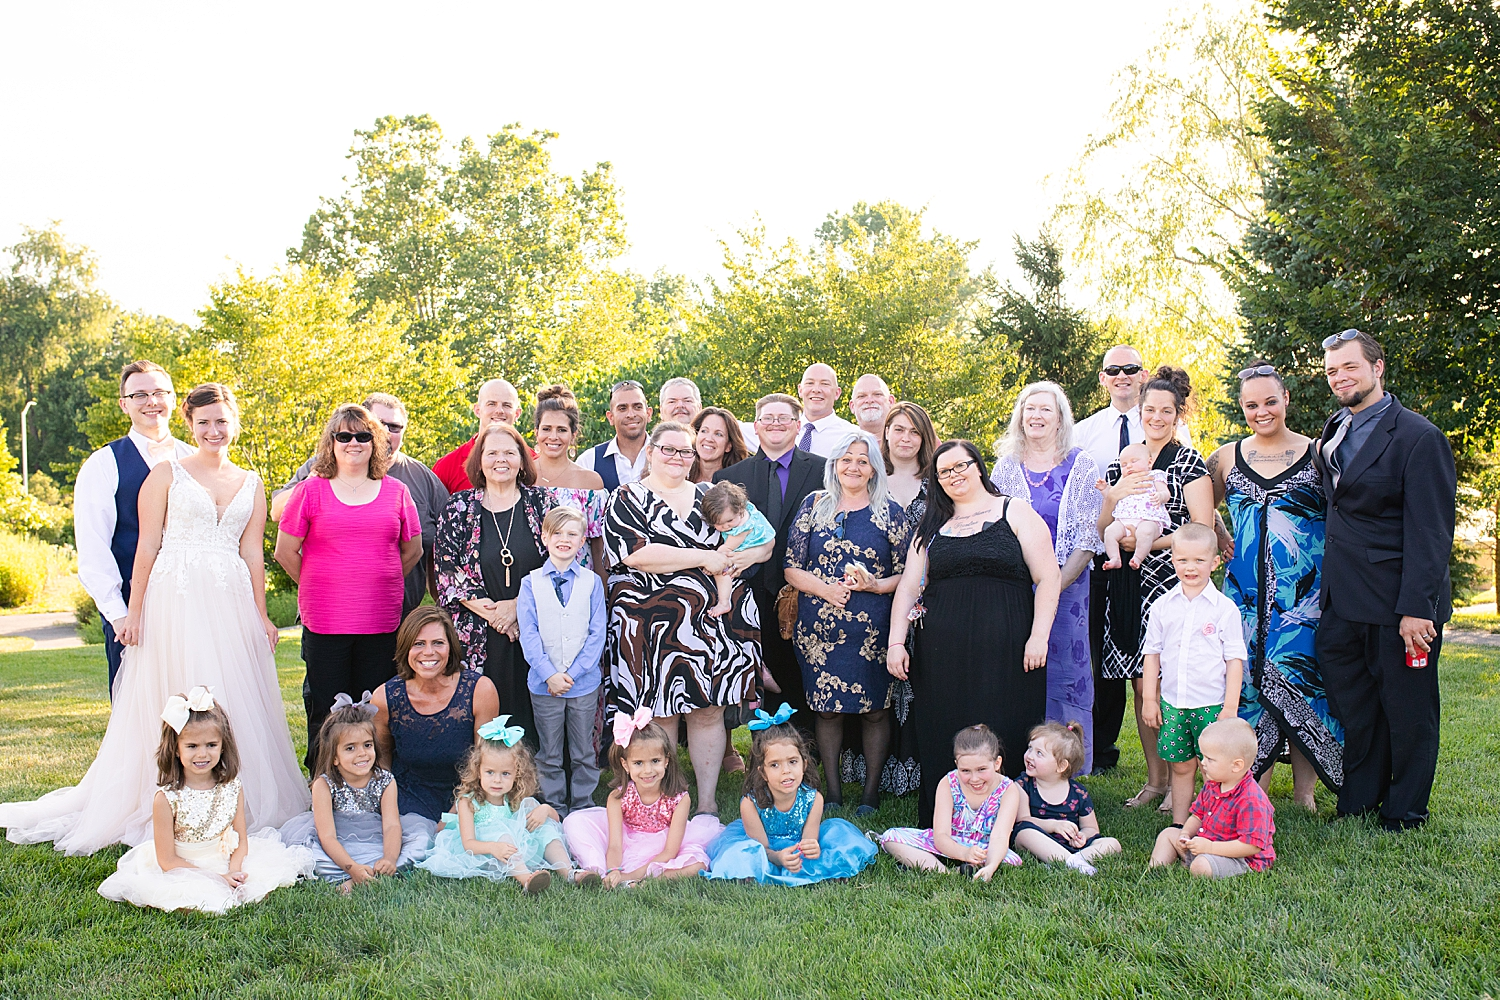 This group came from all over so this shot was important to get since everyone was together!! This photo was taken during the reception right after dinner!